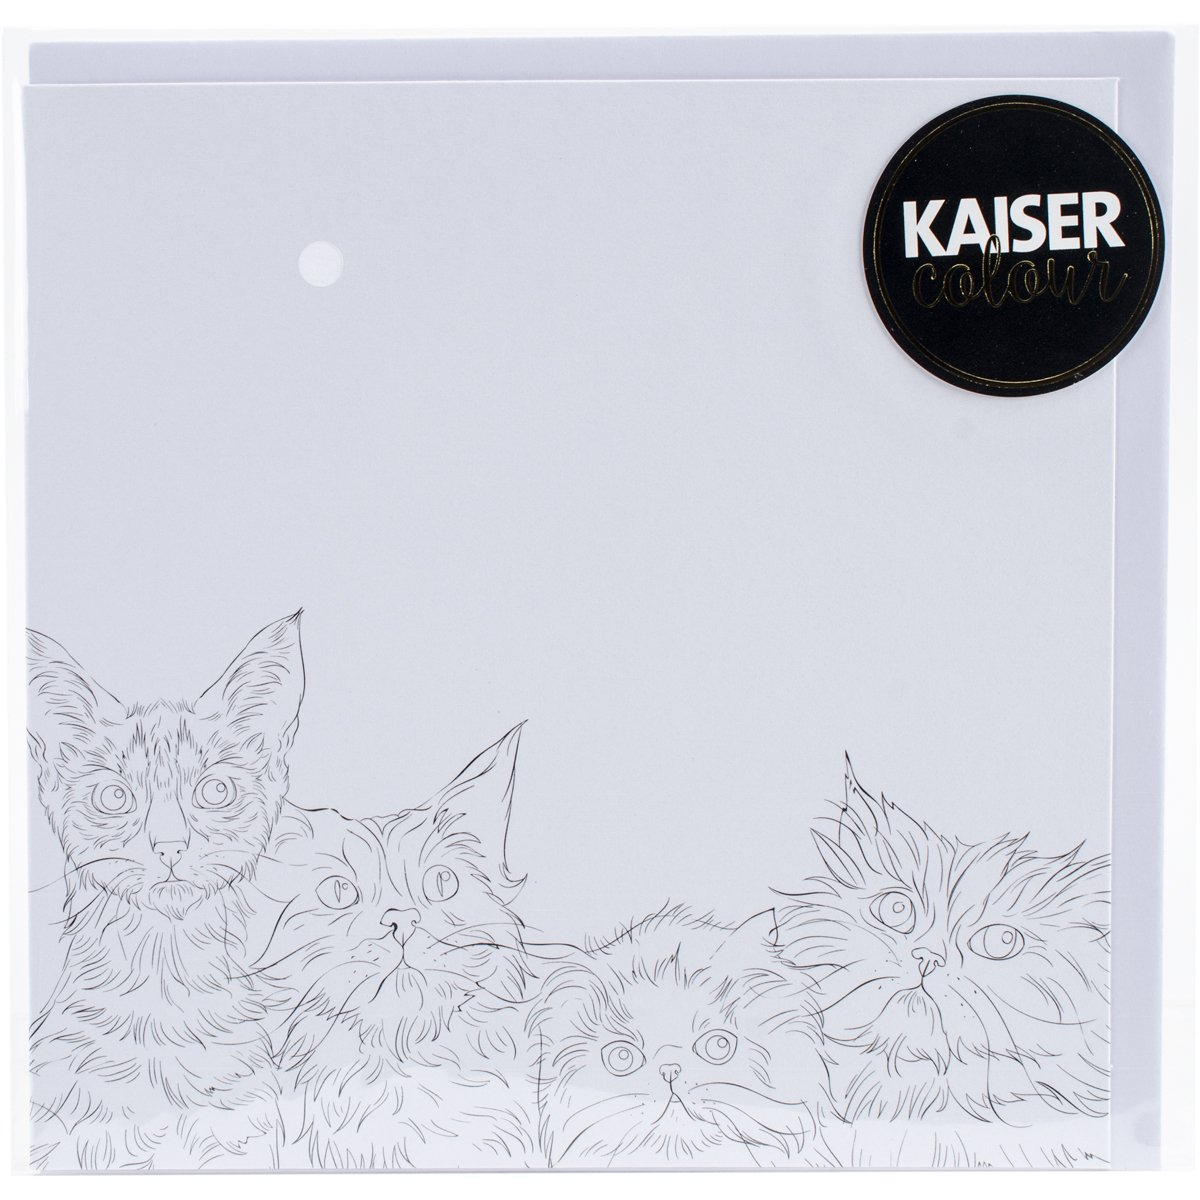 KaisercraftPurrfect KaiserColour Gift Card with Envelope 6 x 6